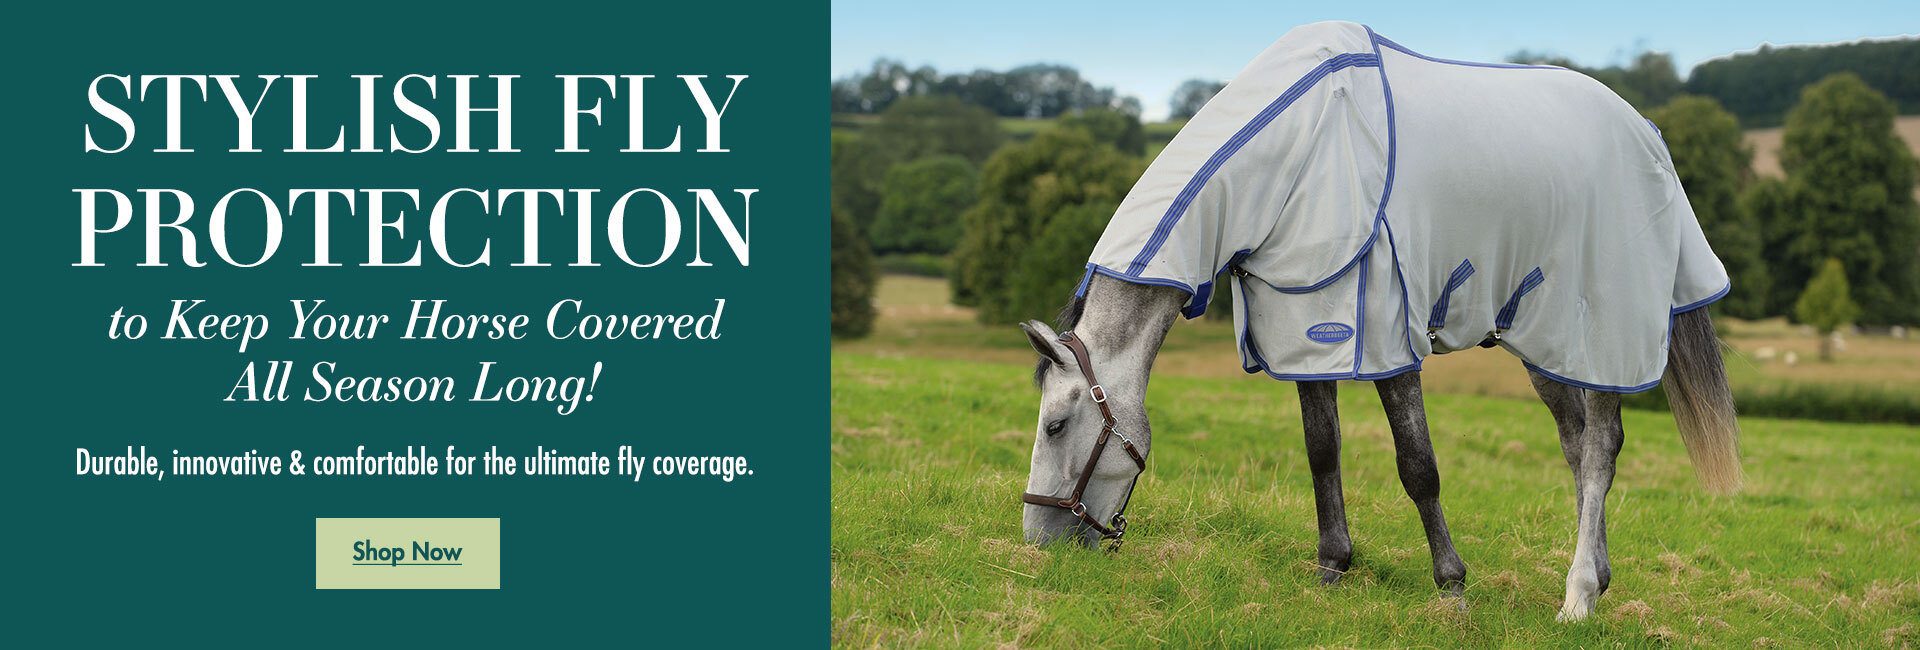 Stylish Fly Protection to Keep Your Horse Covered All Season Long!